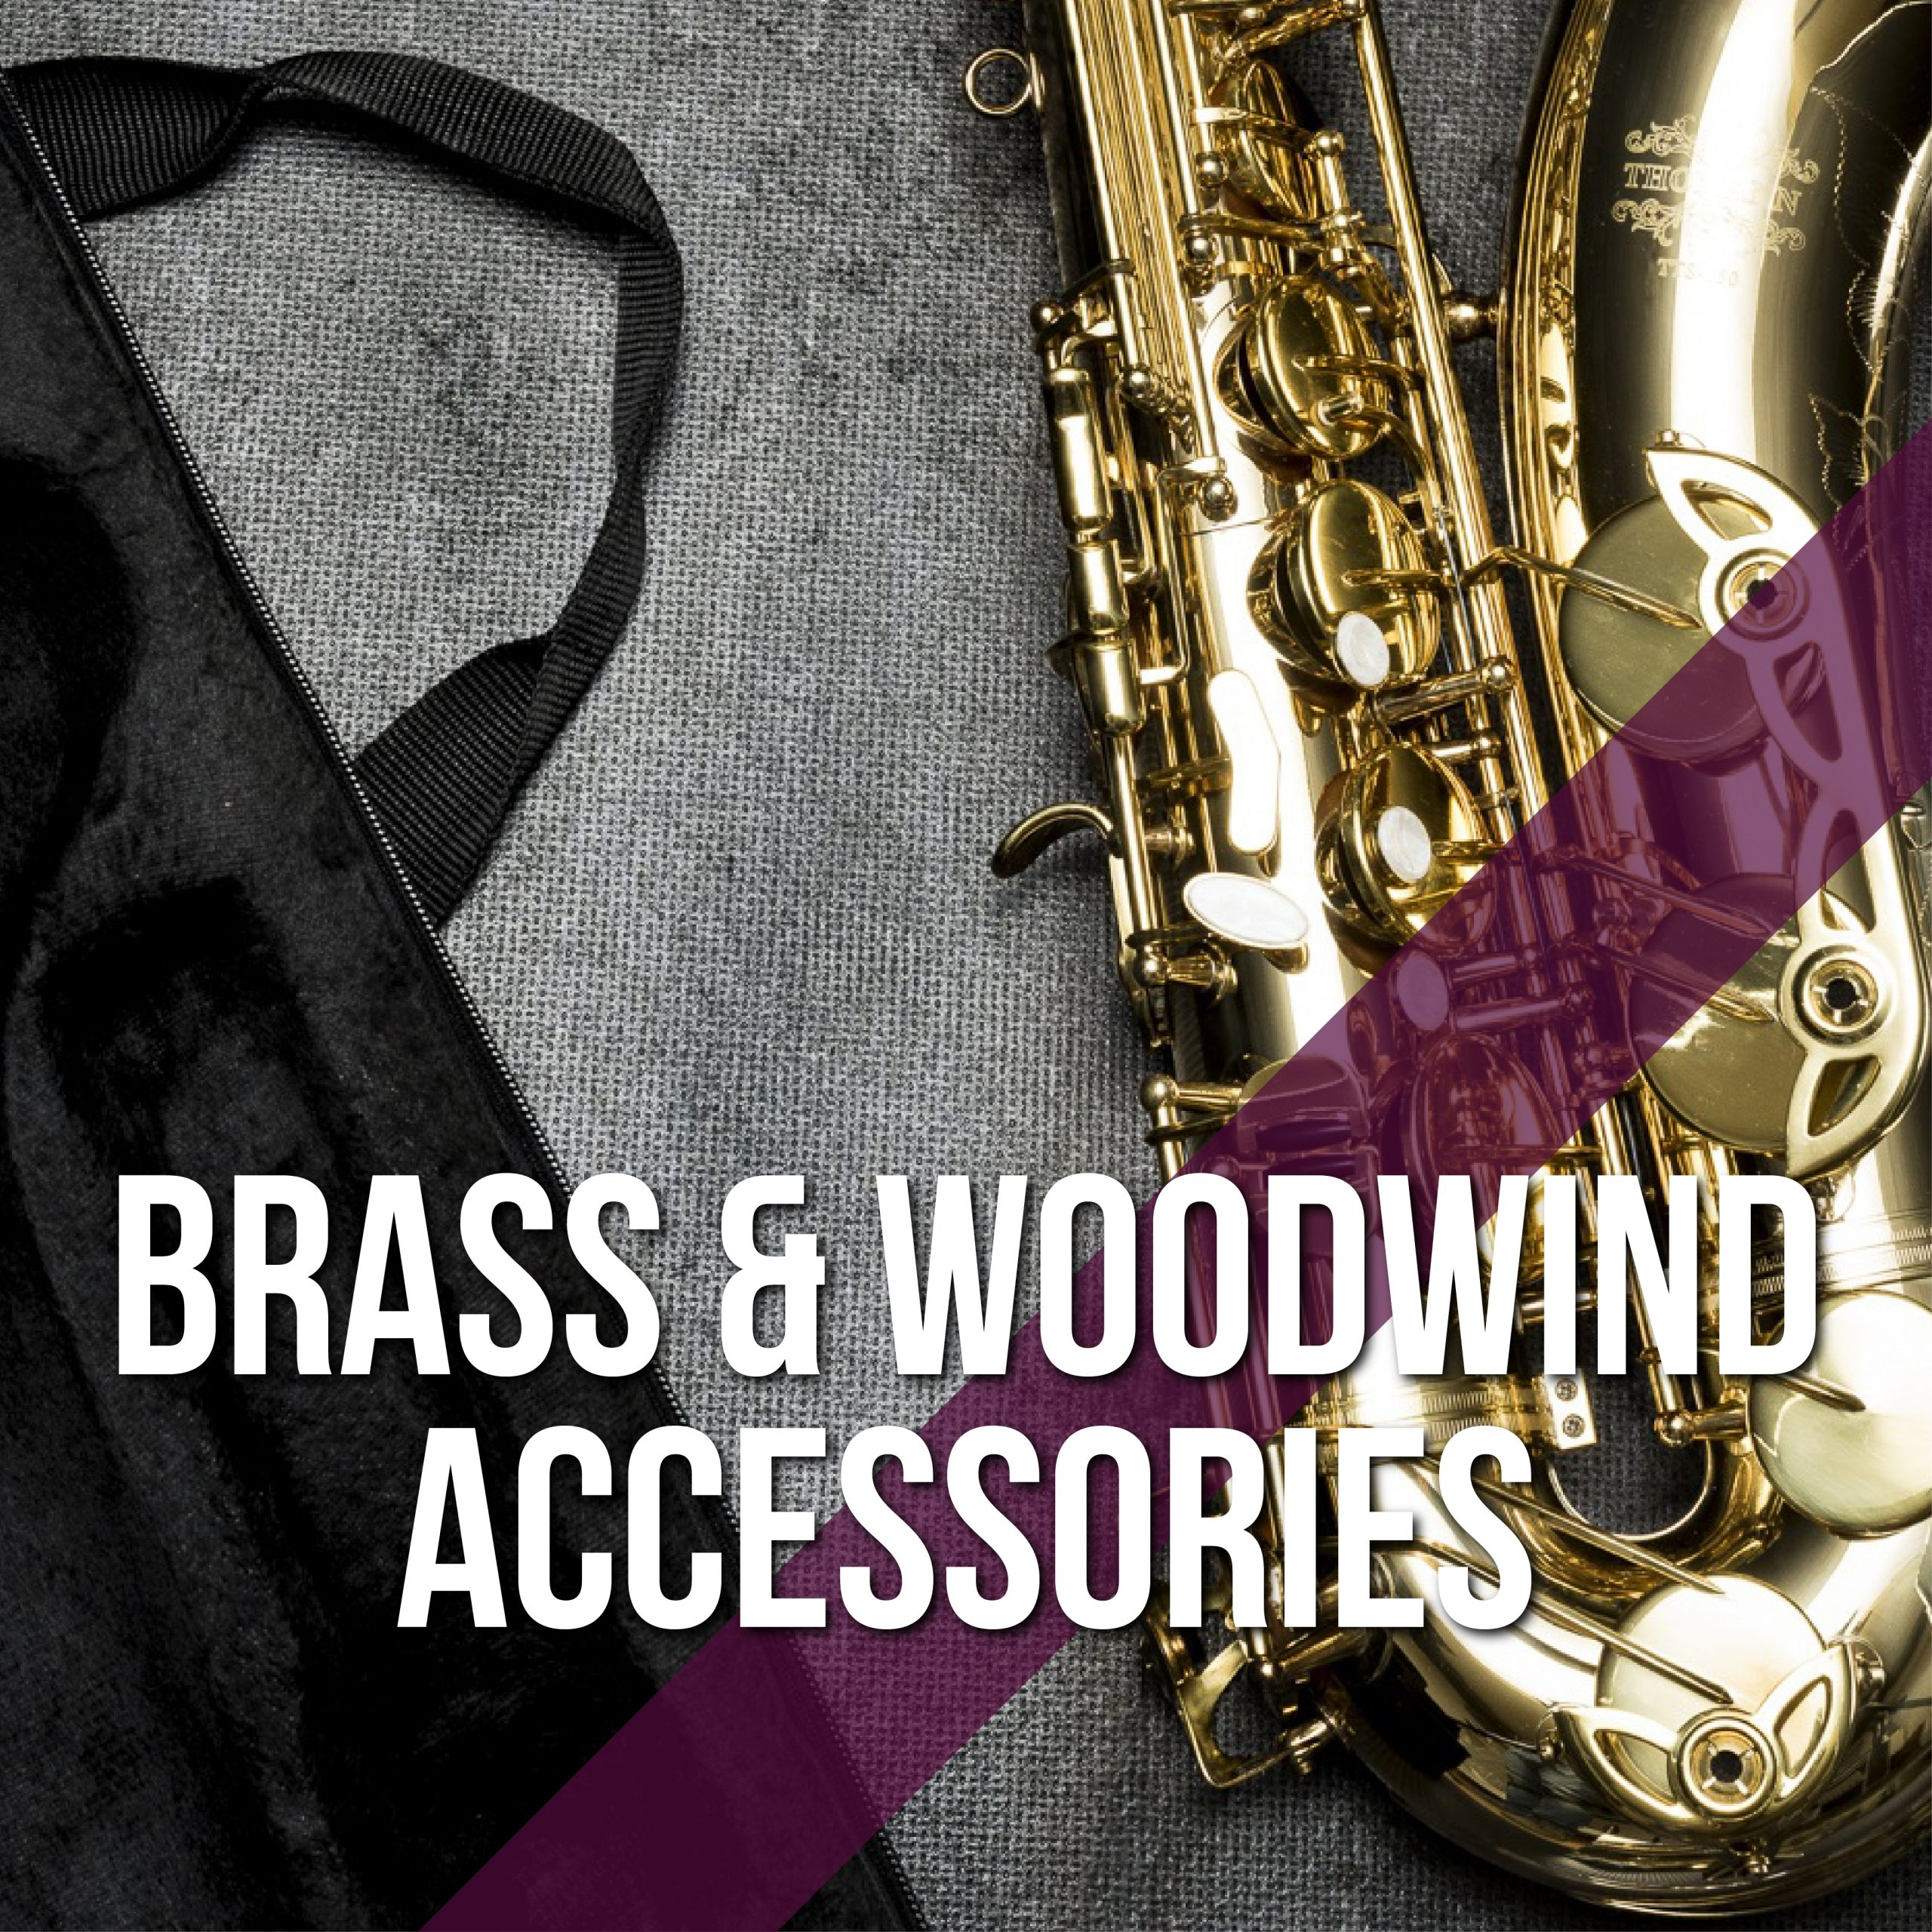 Brass & Woodwind Accessories